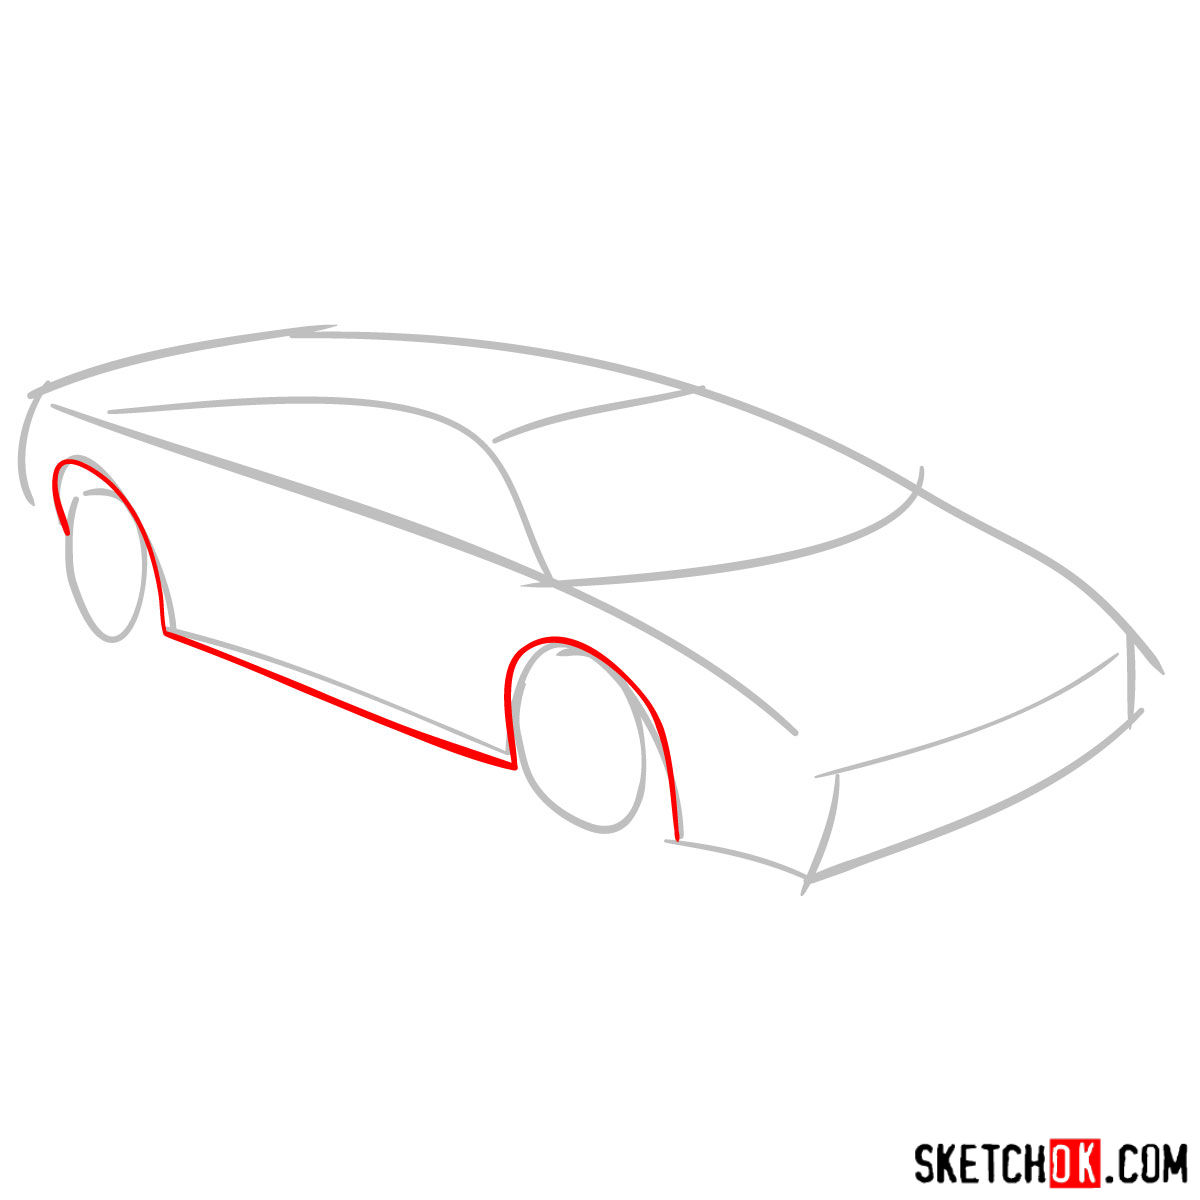 How to draw Lamborghini Diablo - step 02